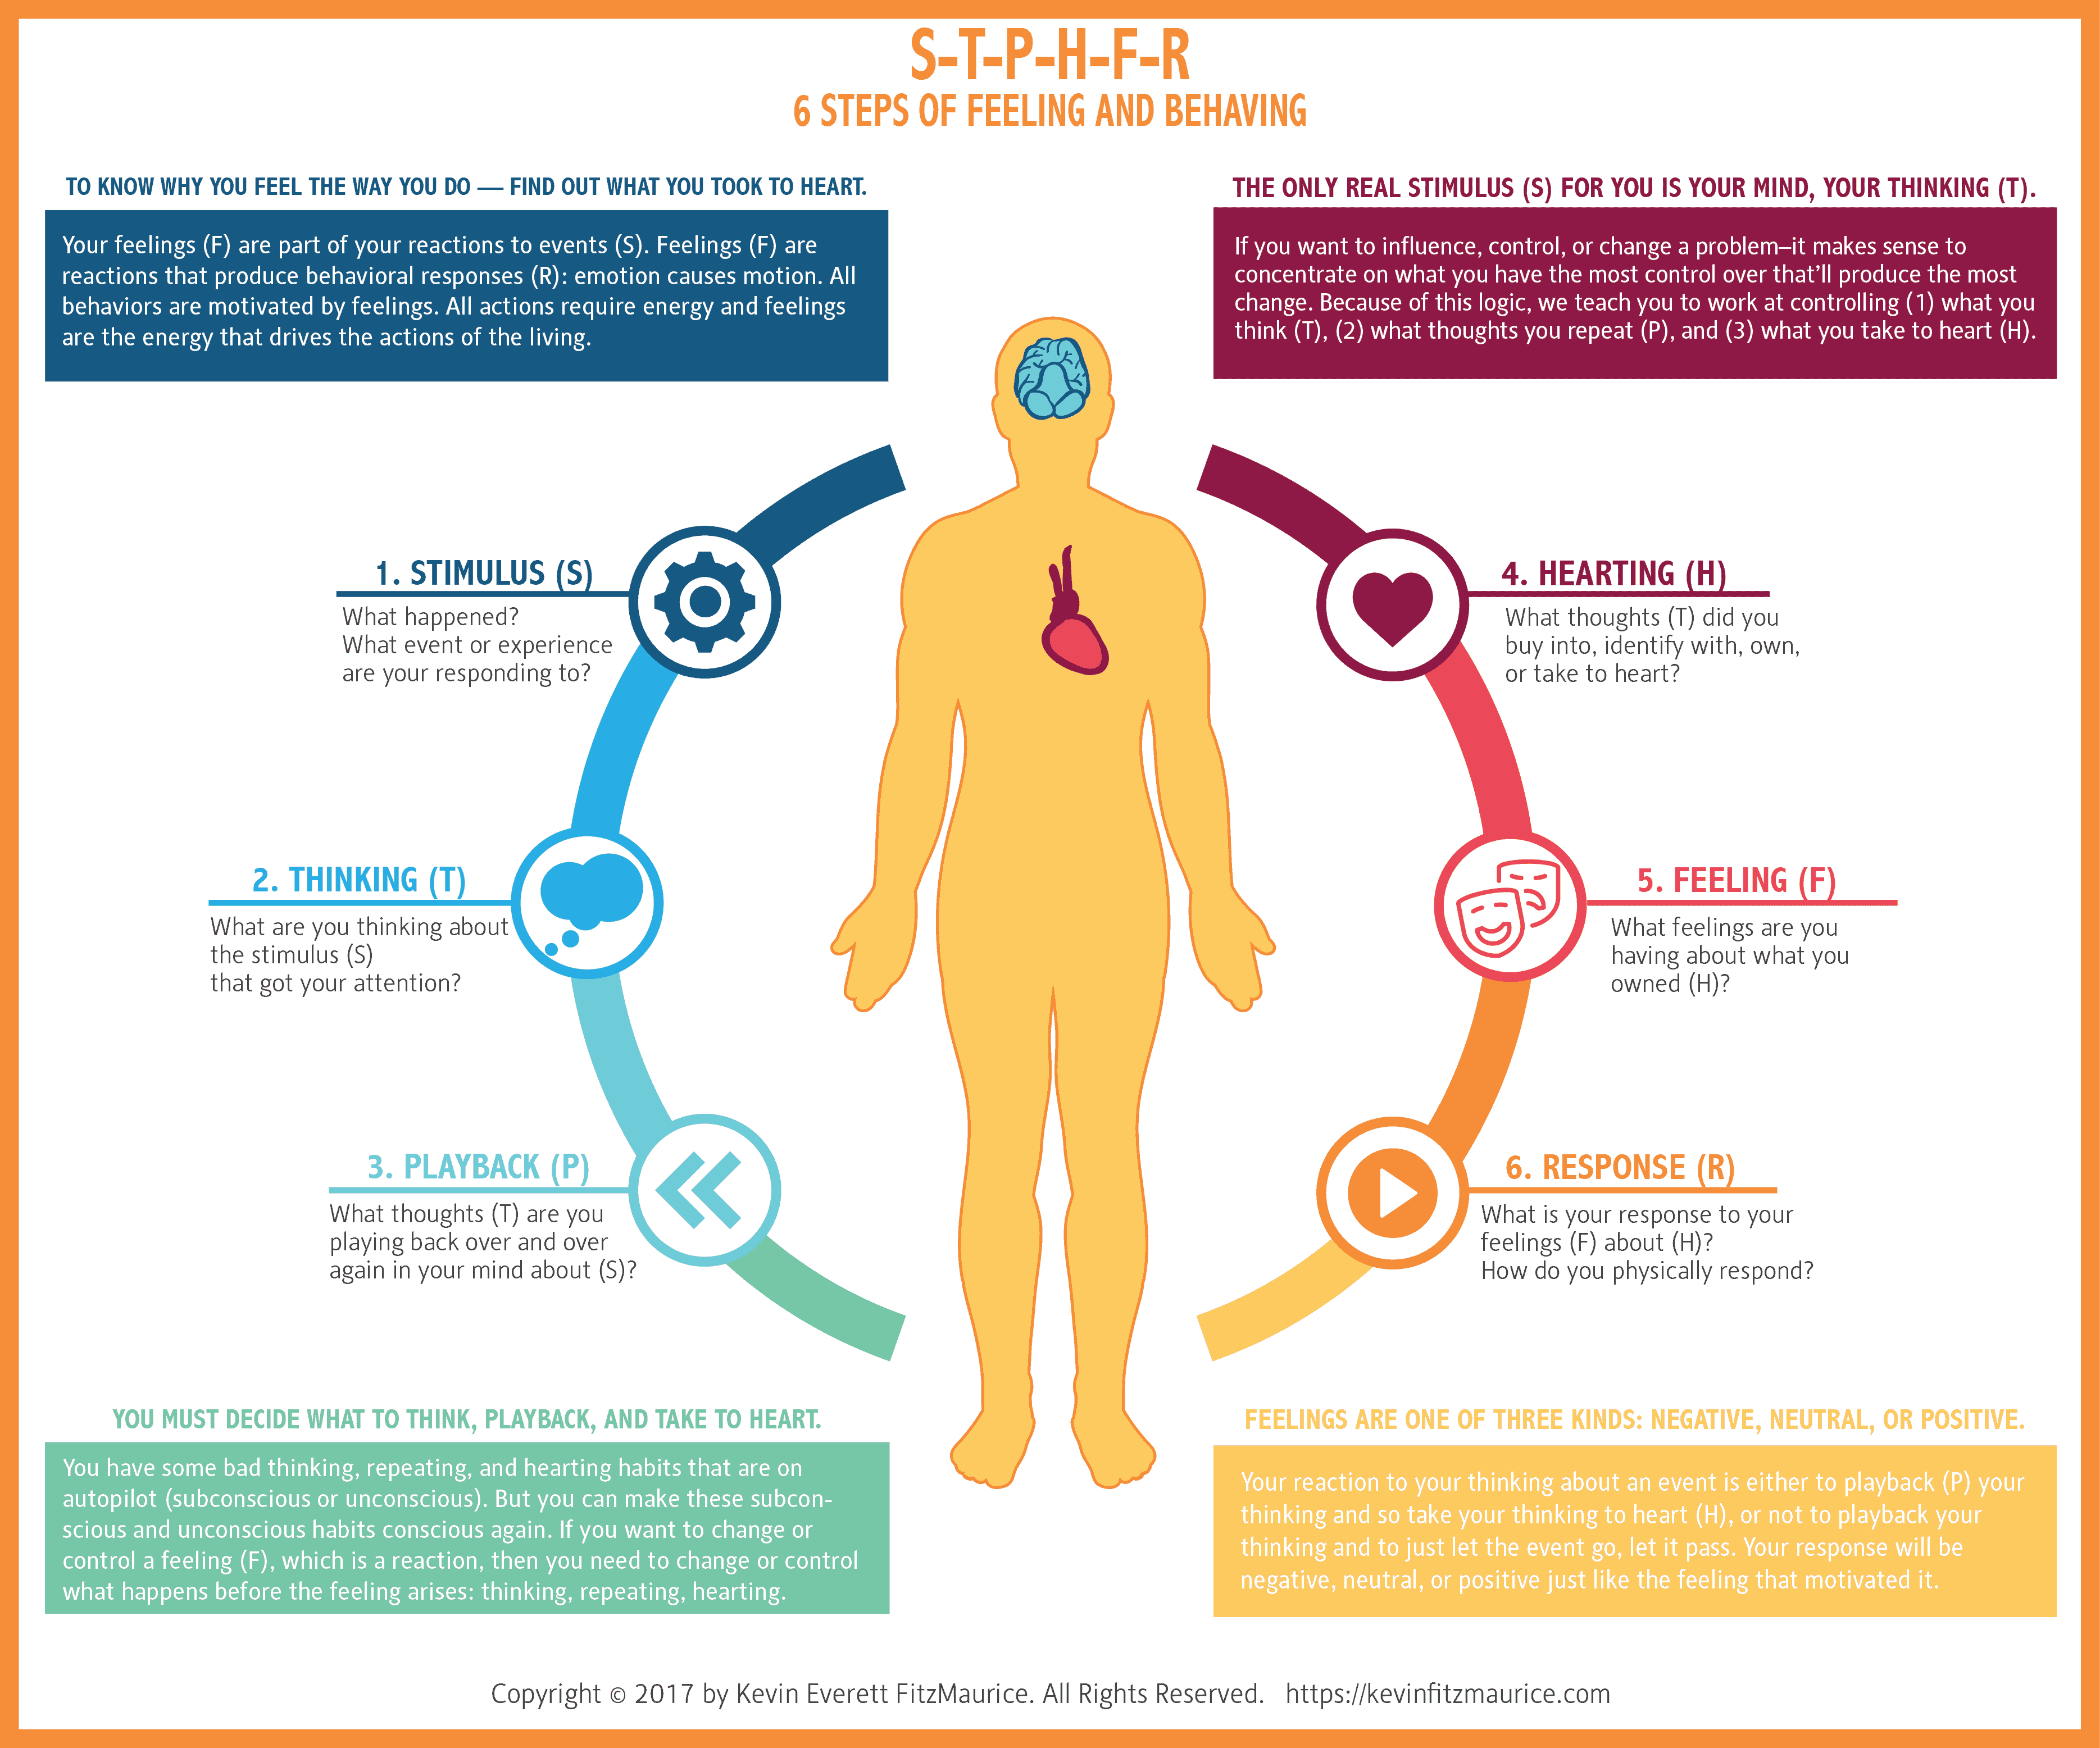 STPHFR Infographic Explanation